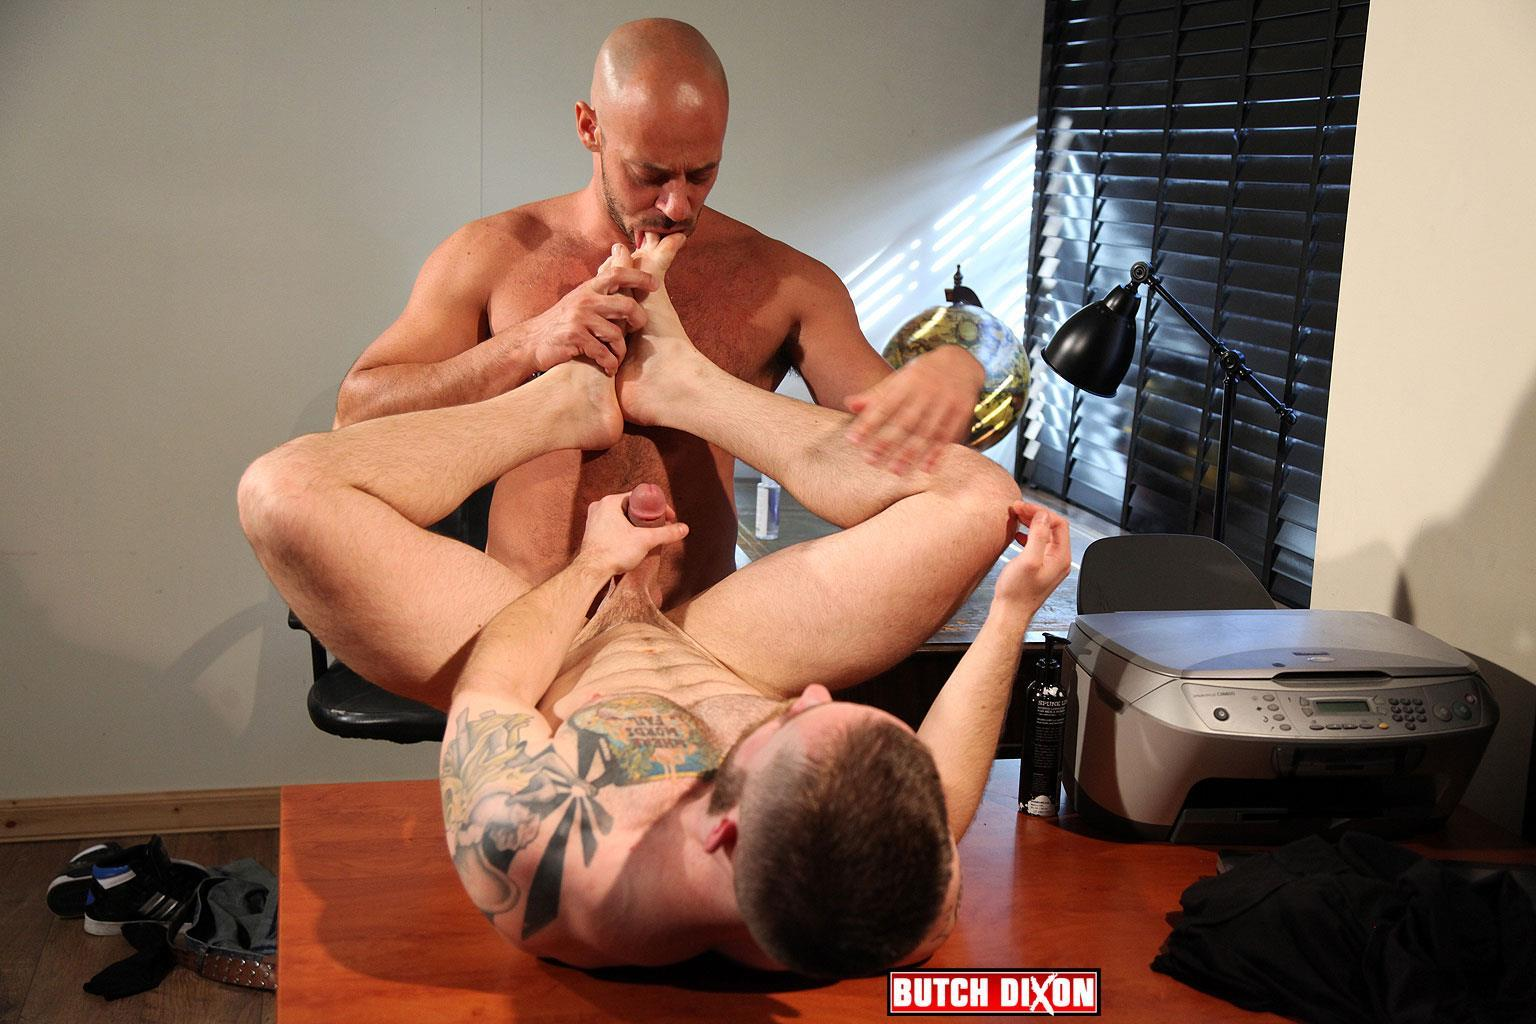 Butch-Dixon-Alfie-Stone-and-Bruno-Fox-Big-Cock-Masculine-Gays-Fucking-Amateur-Gay-Porn-08 Freaky Amateur Hairy Masculine Men Fucking With Thick Cocks